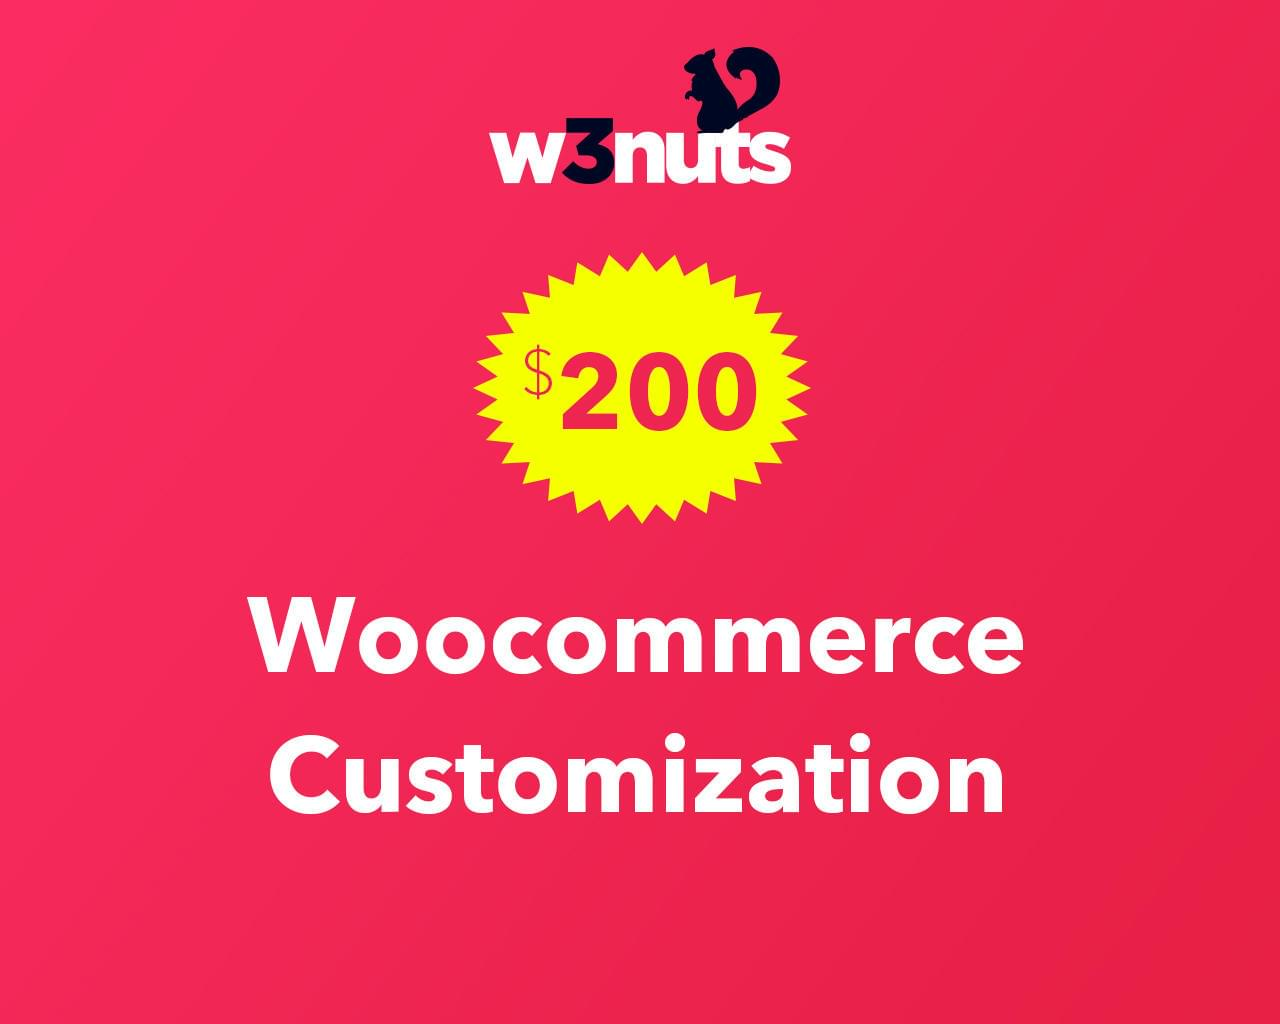 Woo Commerce customization  by samirkaila - 116105